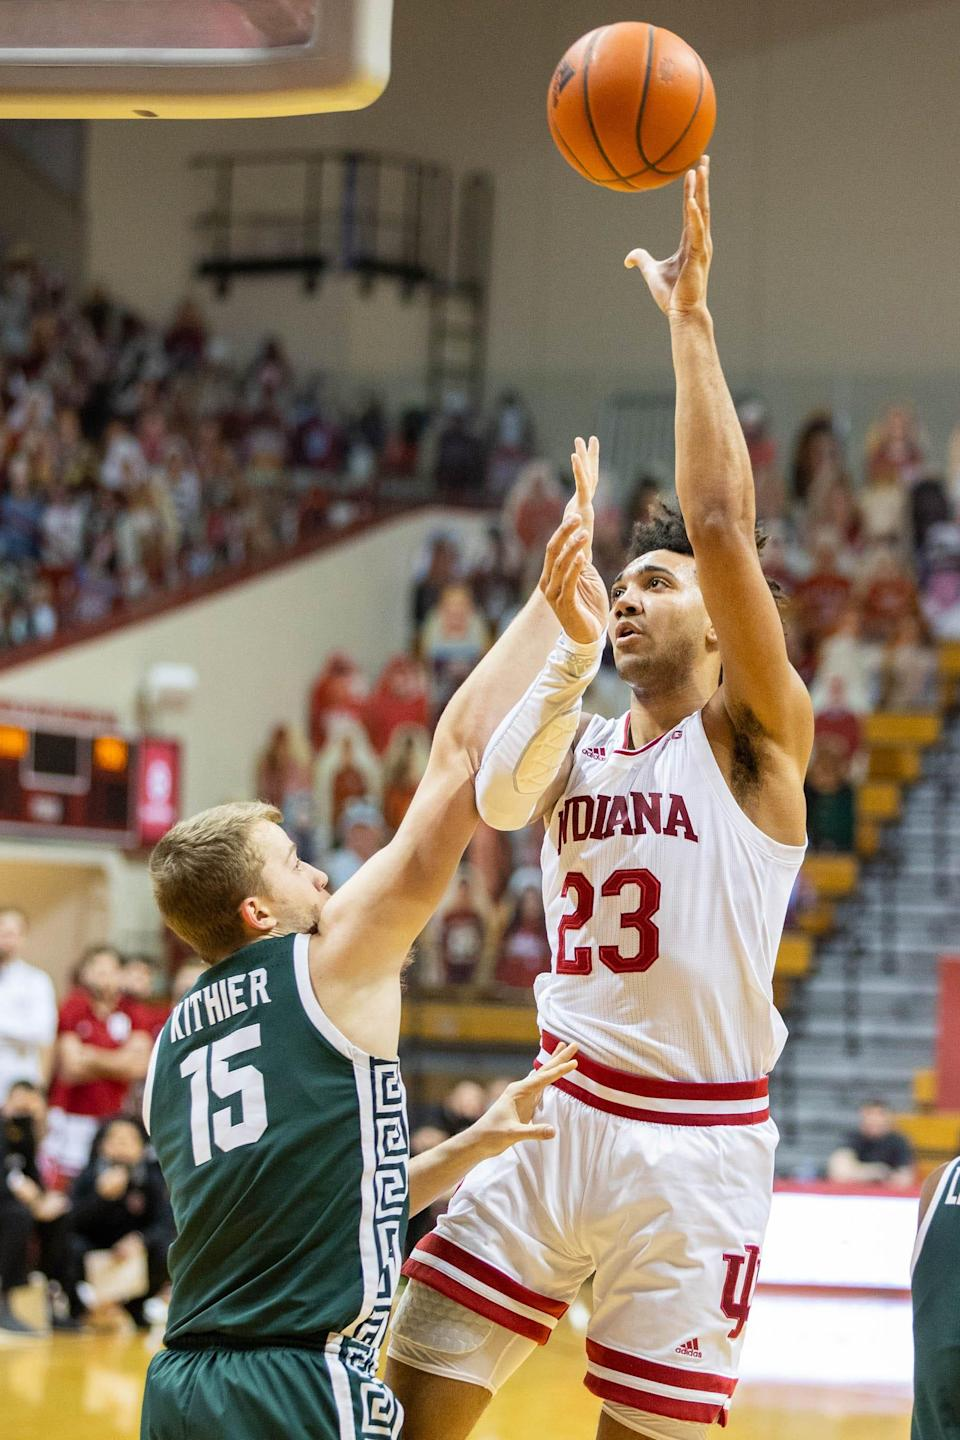 Feb 20, 2021; Bloomington, Indiana, USA; Indiana Hoosiers forward Trayce Jackson-Davis (23) shoots the ball over Michigan State Spartans forward Thomas Kithier (15) in the first half at Simon Skjodt Assembly Hall. Mandatory Credit: Trevor Ruszkowski-USA TODAY Sports